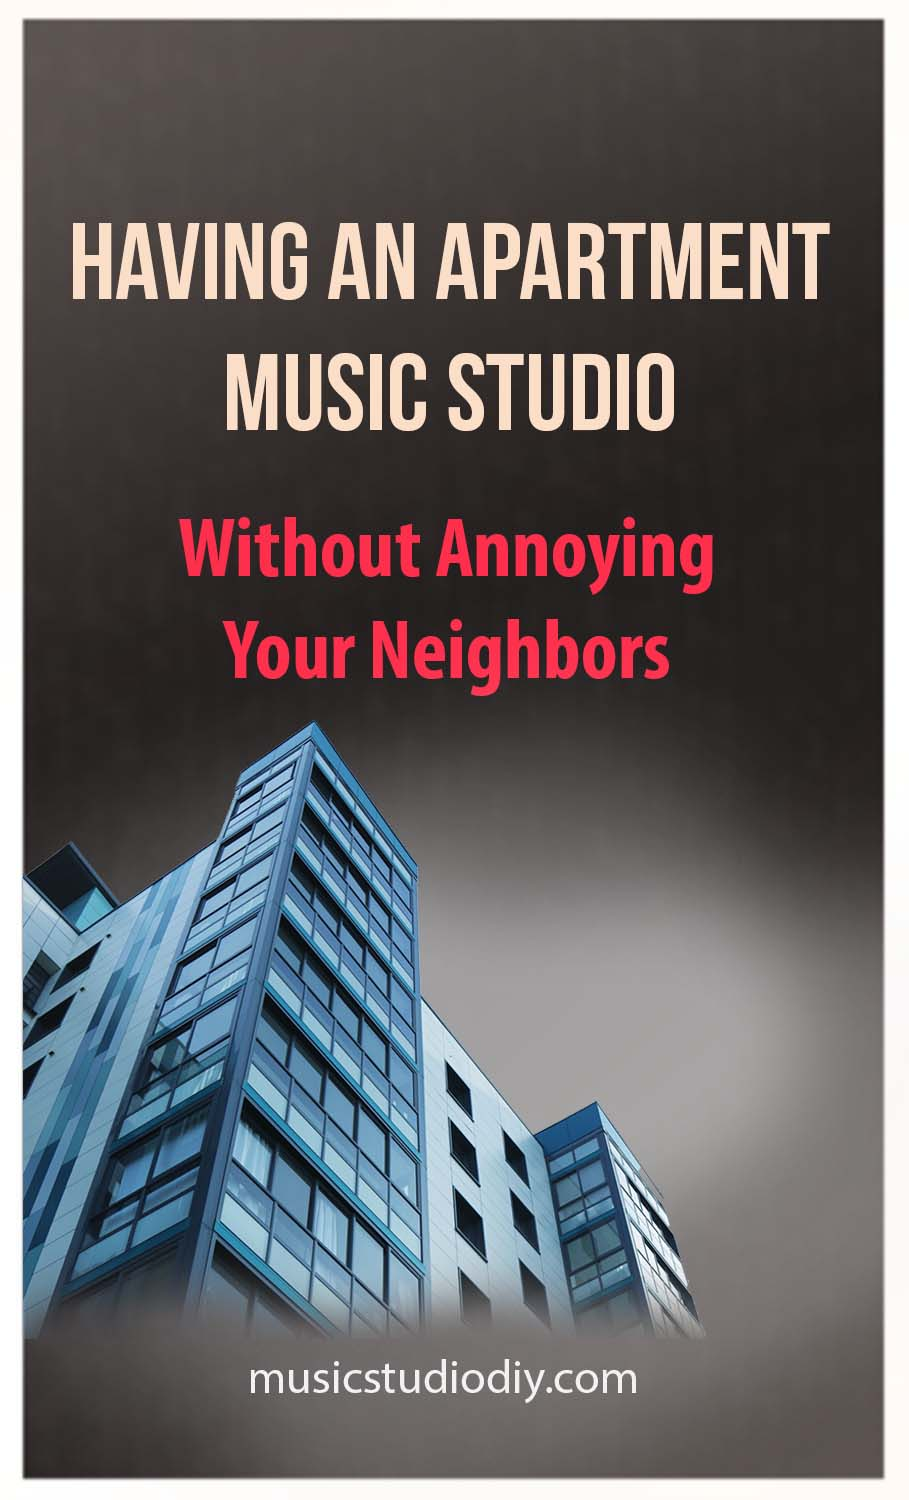 Having an Apartment Music Studio Without Annoying Your